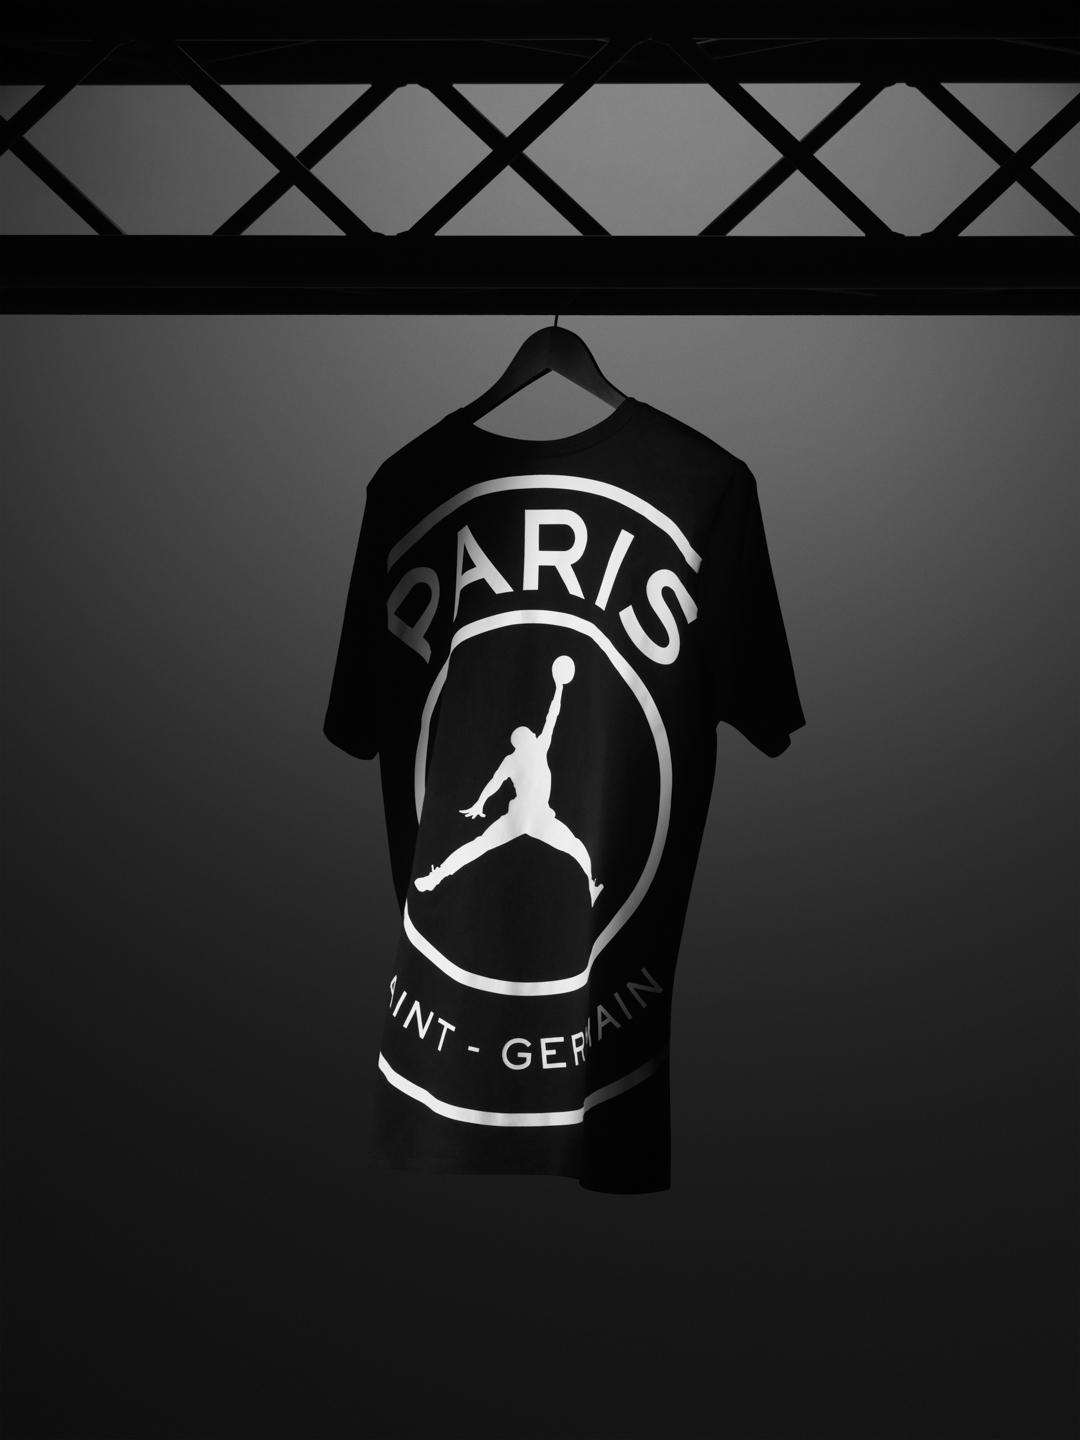 9440b925d When PSG steps on the field this coming week with Jumpman logo on their  chest, it will definitely mark a moment in both soccer and sneaker culture  history.